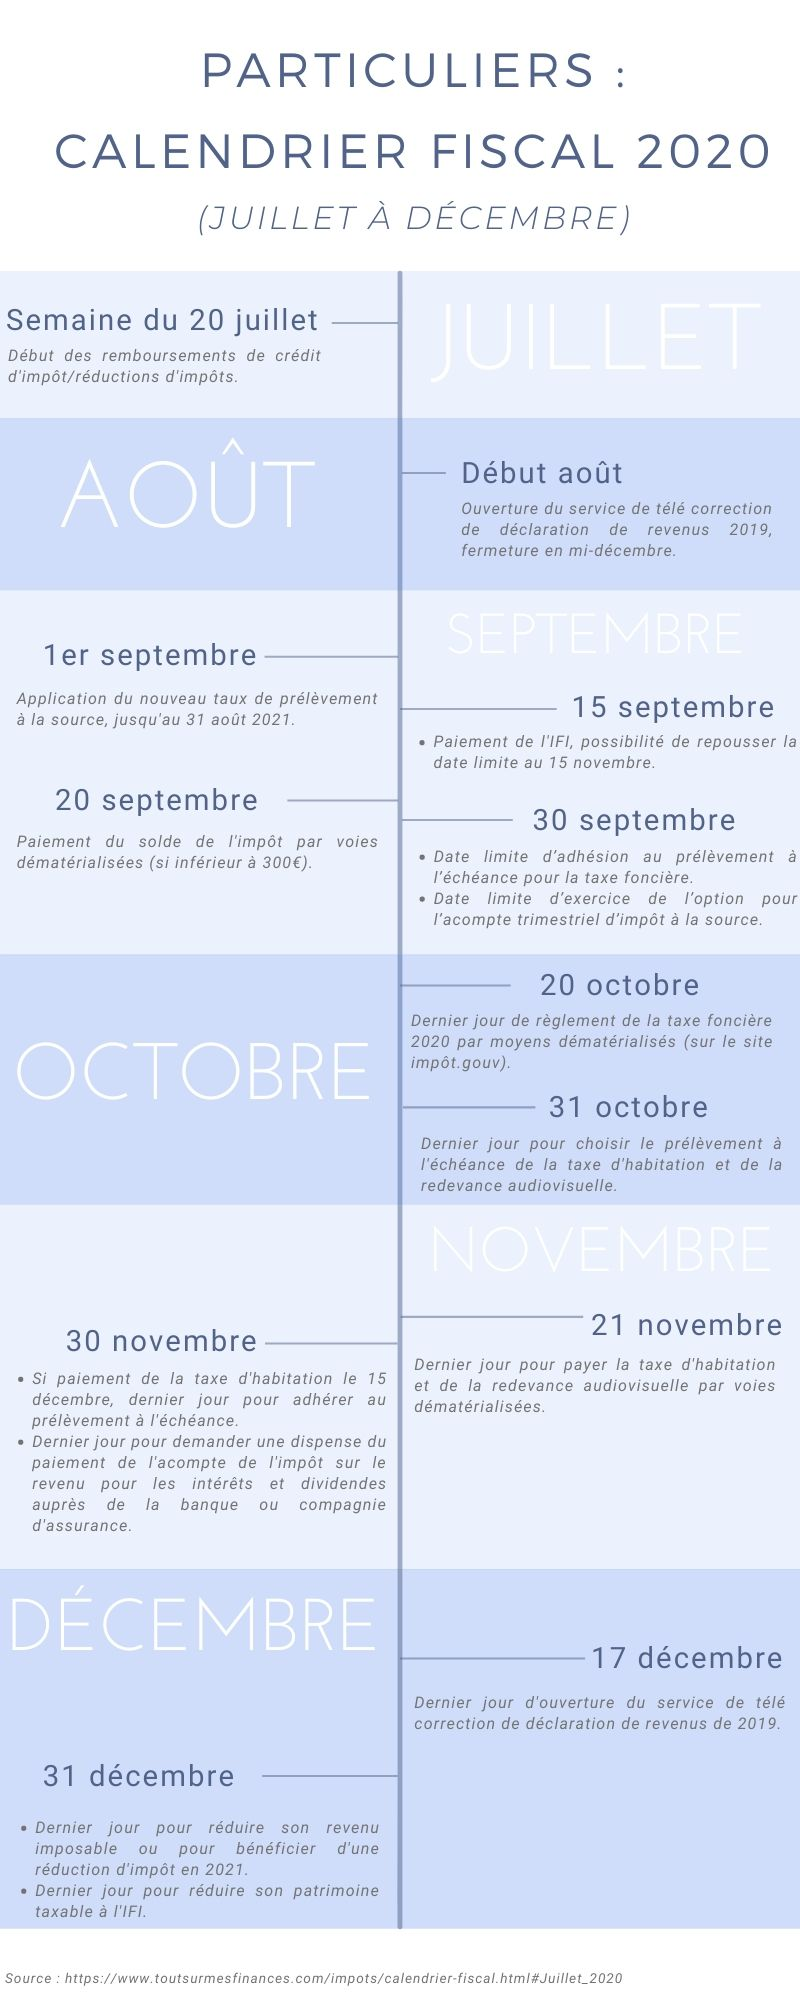 Calendrier Fiscal - Particuliers.jpg